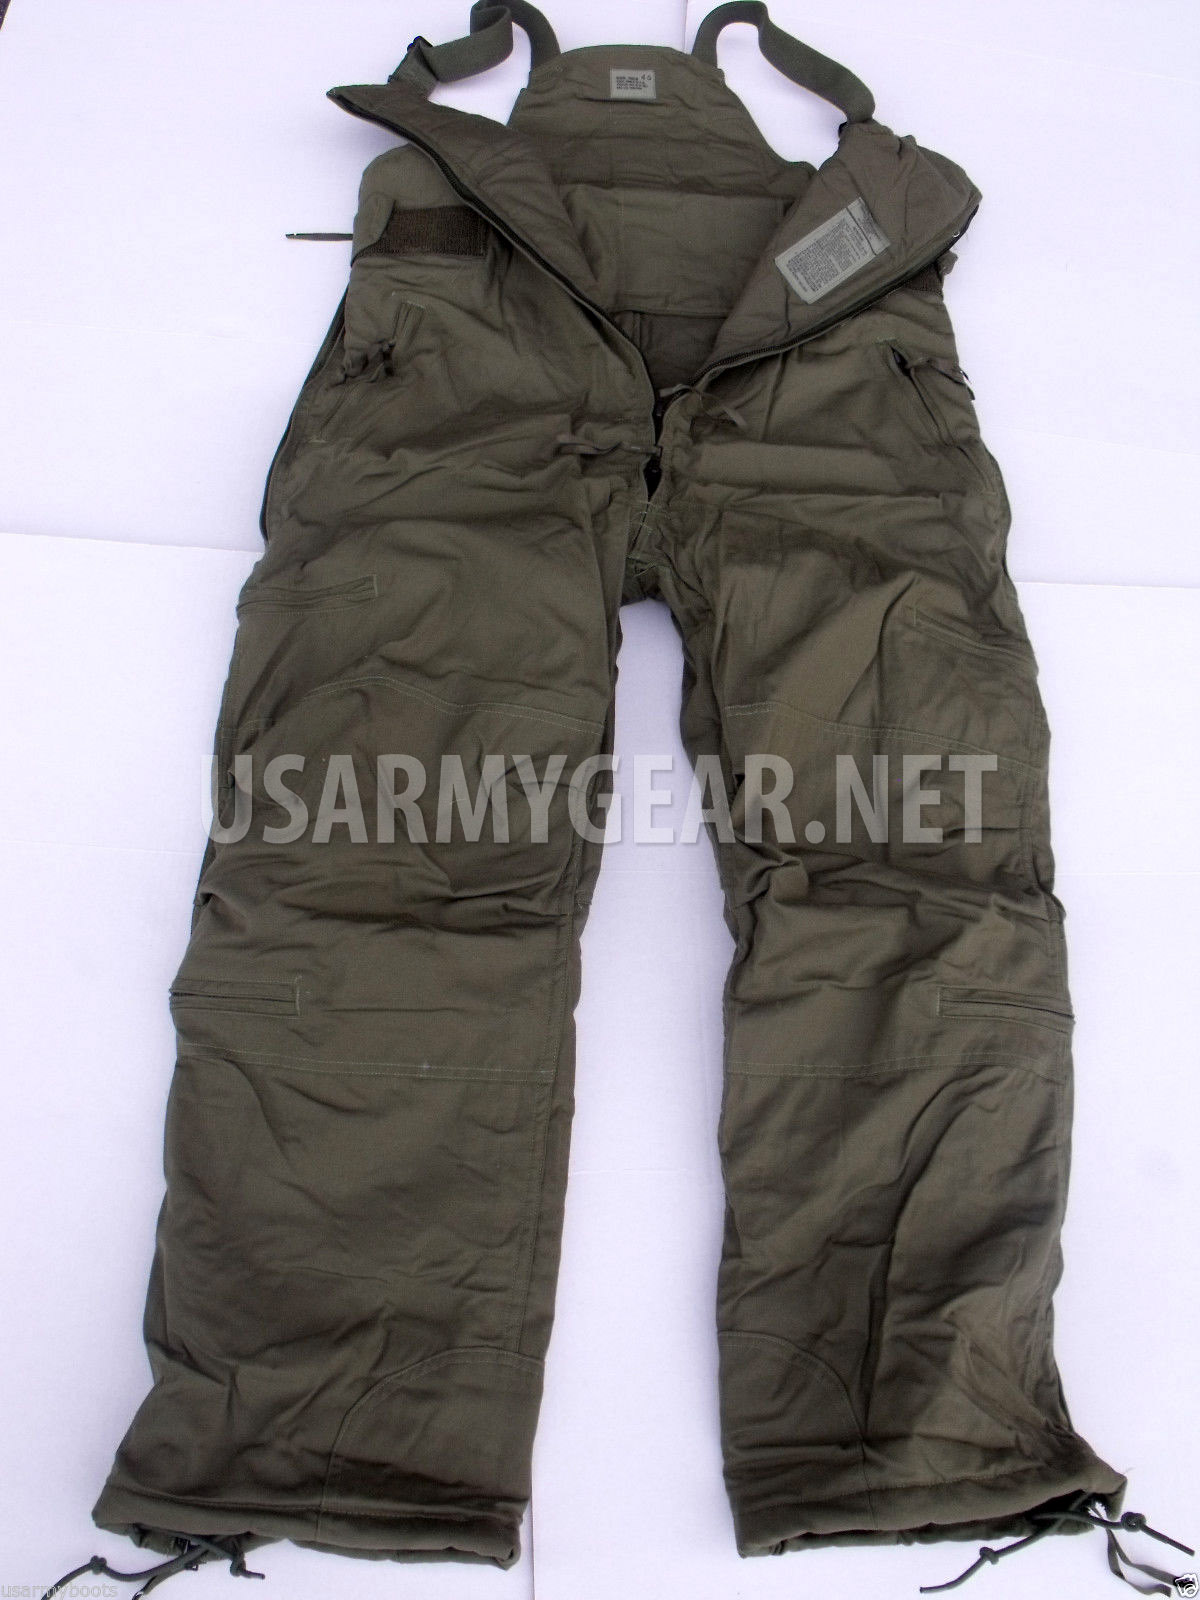 Us Army Extreme Cold Weather High Quality Pants Overall